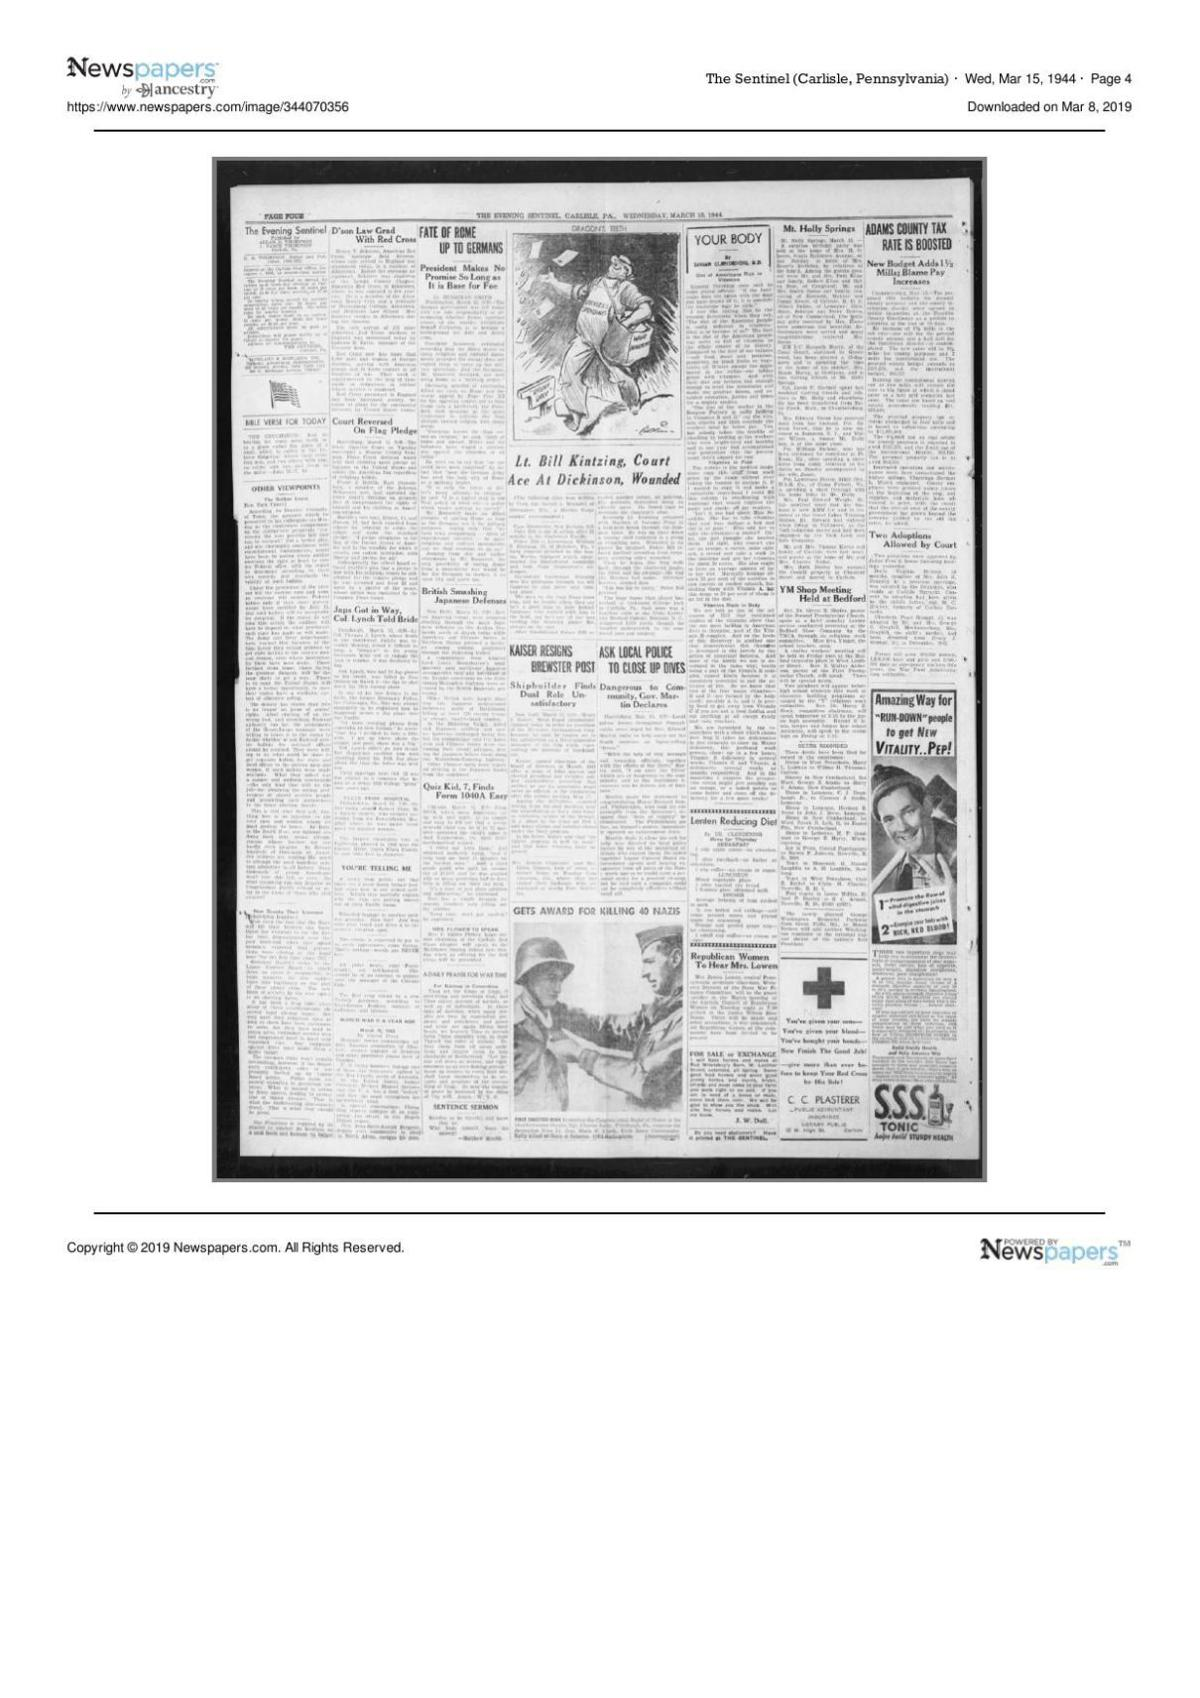 The Sentinel from March 15, 1944 page four